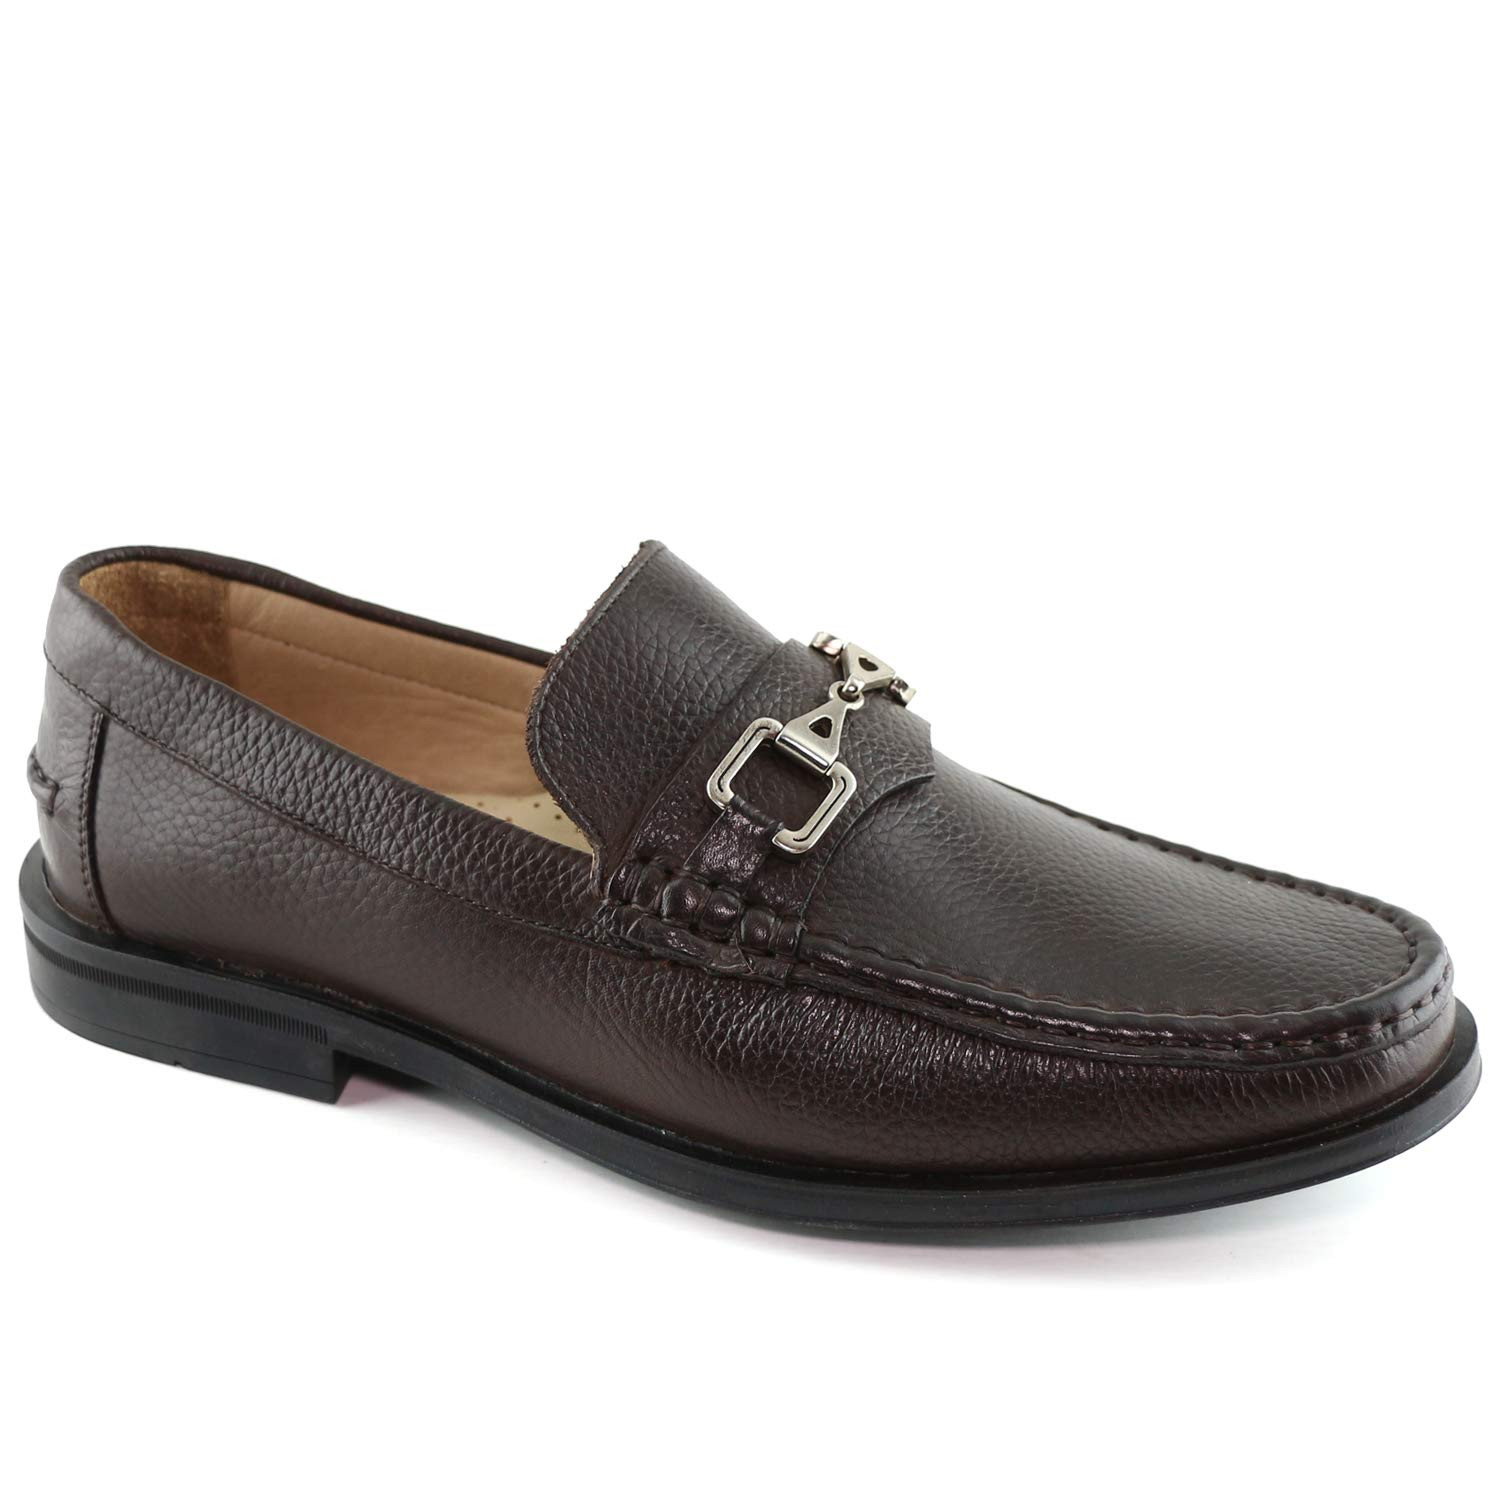 Bspringaaa korn herr Genuine läder Made Made Made in Brasilien Astoria Bit Loafer Marc Joseph ny Mode skor  outlet butik